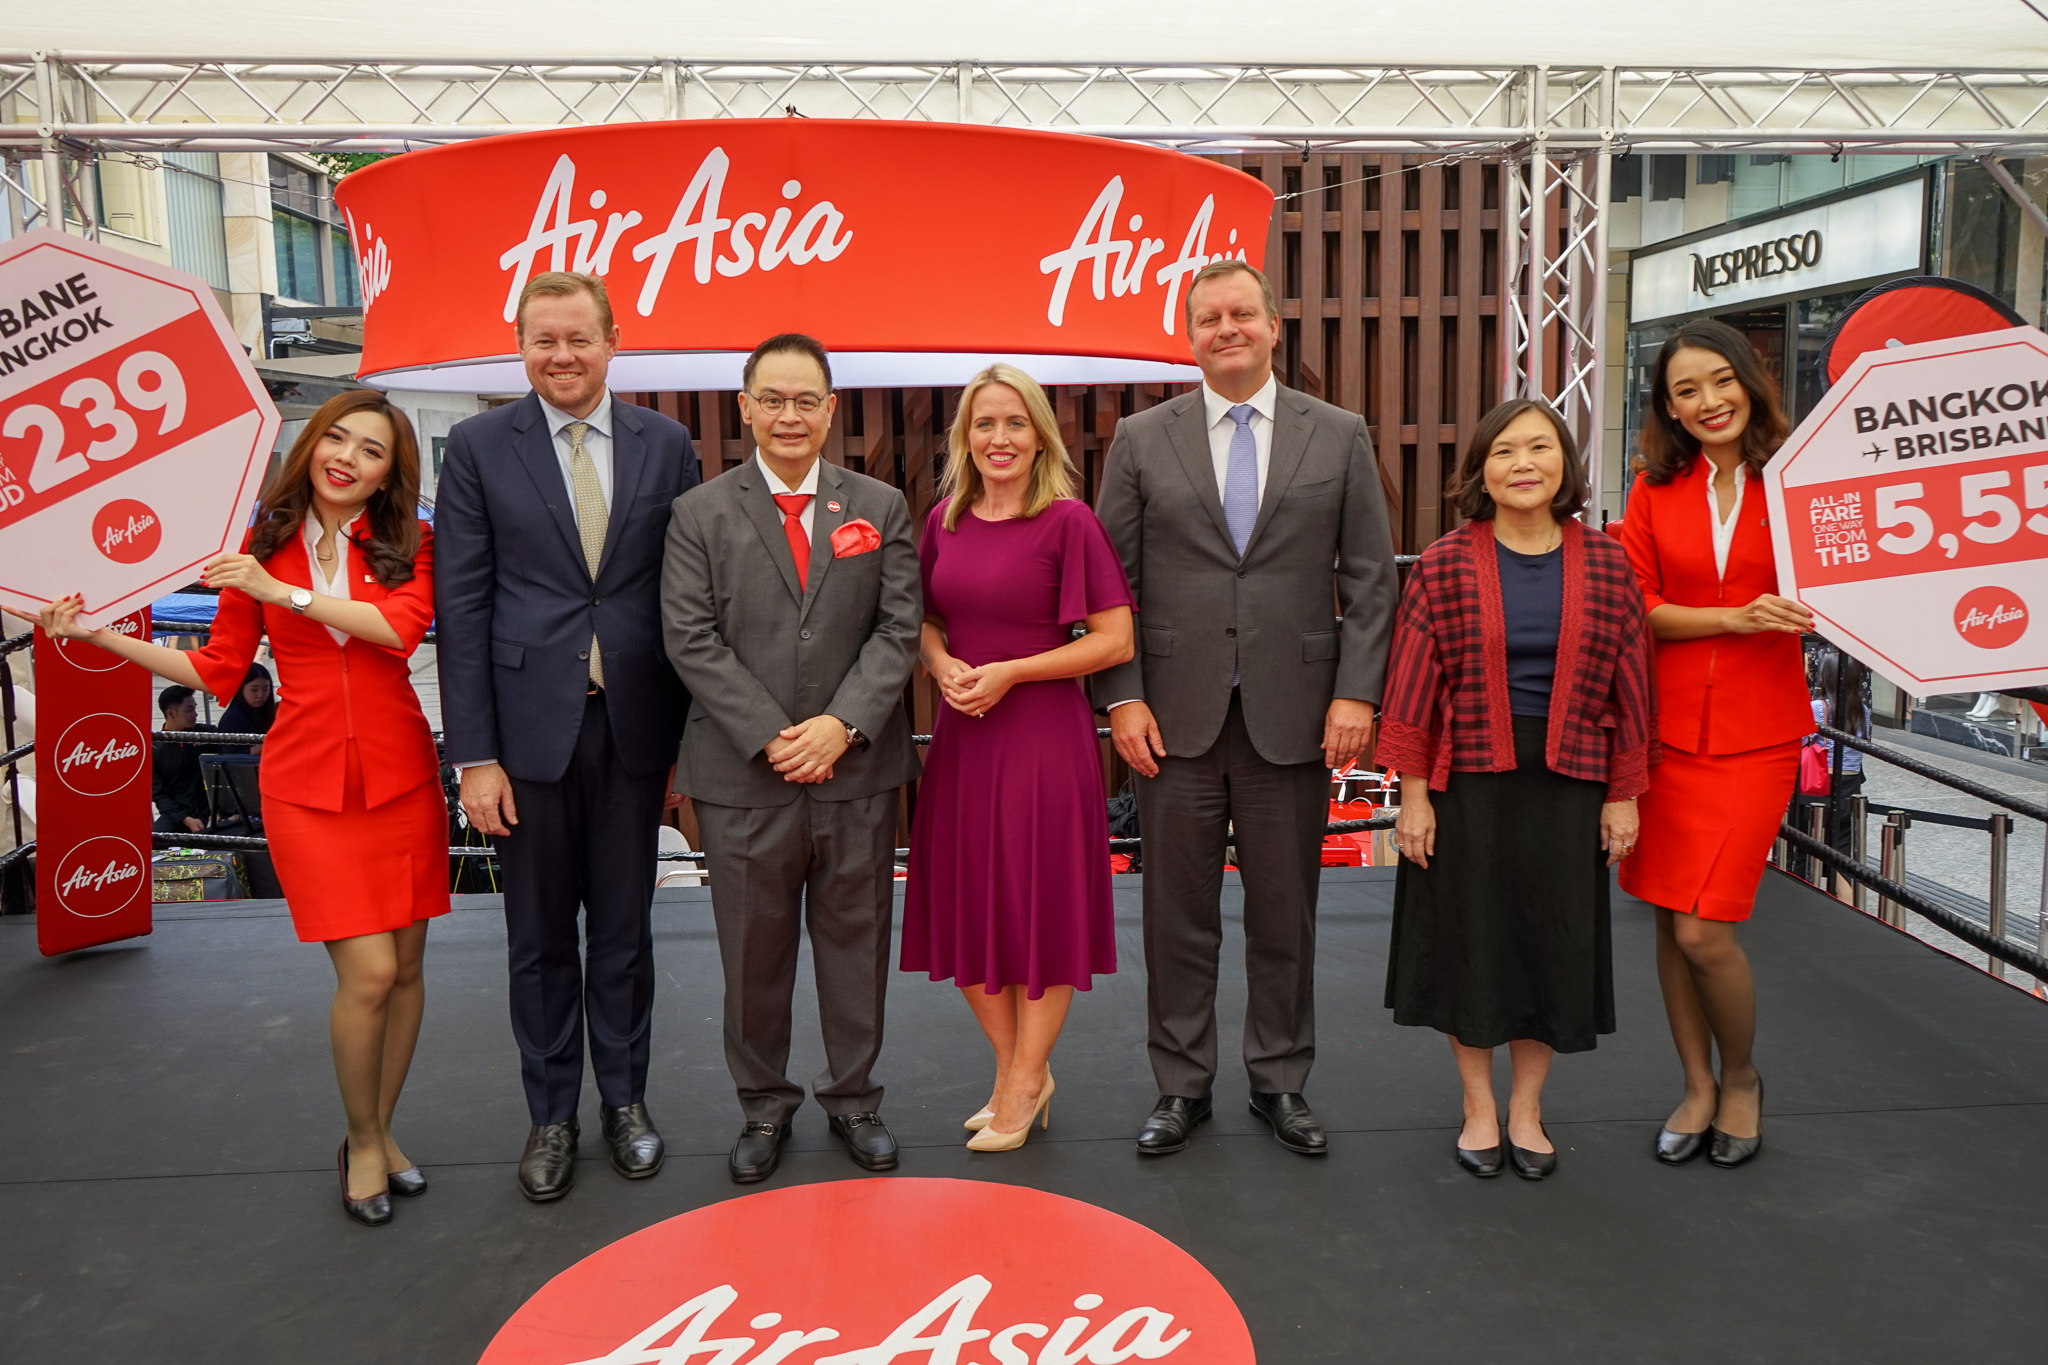 Photo Caption:  (From 2nd from Left) Andrew Park, Honorary Consul of Thailand, Royal Thai Consulate-General Queensland; Nadda Buranasiri, AirAsia X Group CEO and Thai AirAsia X CEO; Hon. Kate James, Minister of Tourism Industry Development for Queensland Government; Gert-Jan de Graaf, Brisbane Airport Corporation CEO; Andrew Park and Ms Suladda Sarutilavan, Director of Tourism Authority of Thailand flanked by AirAsia cabin crew at the announcement today.